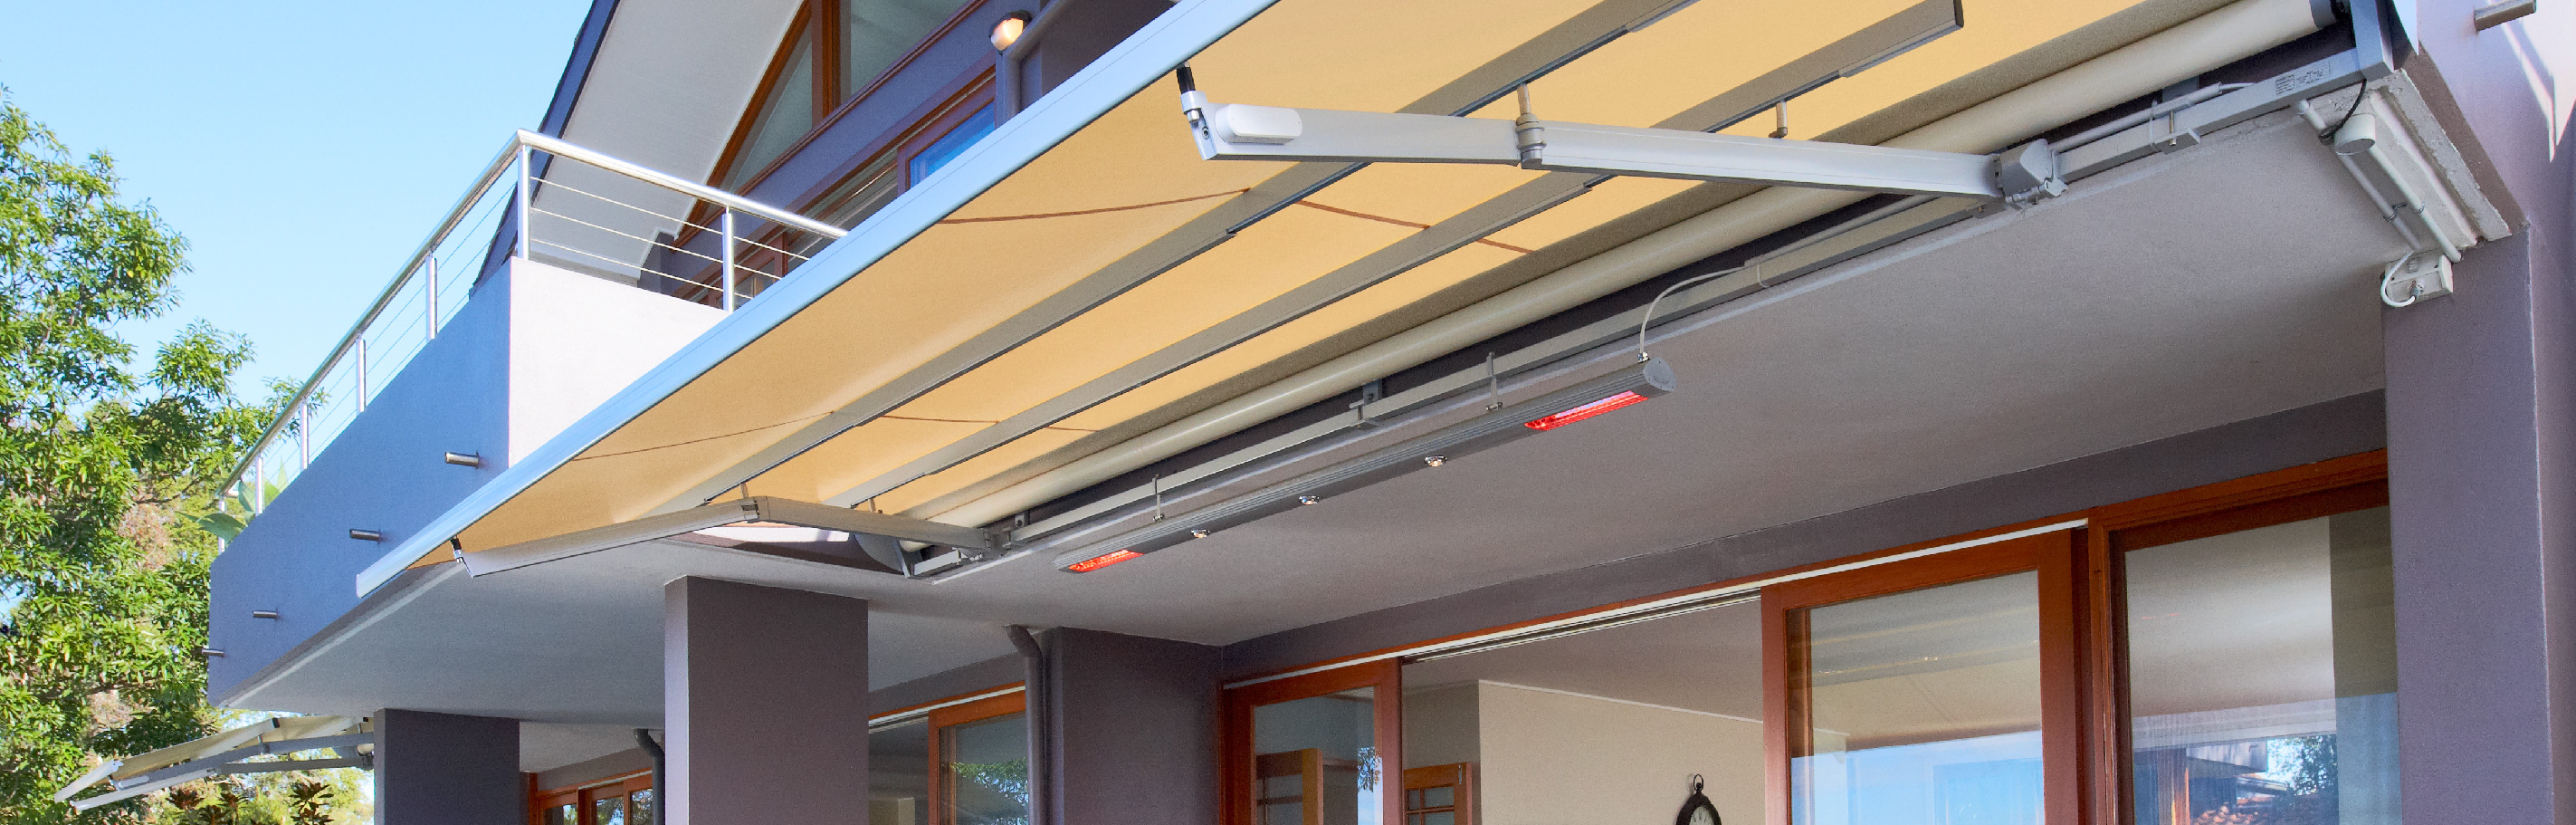 Luxaflex - Products - External Collection - Folding Arm Awnings Bottom